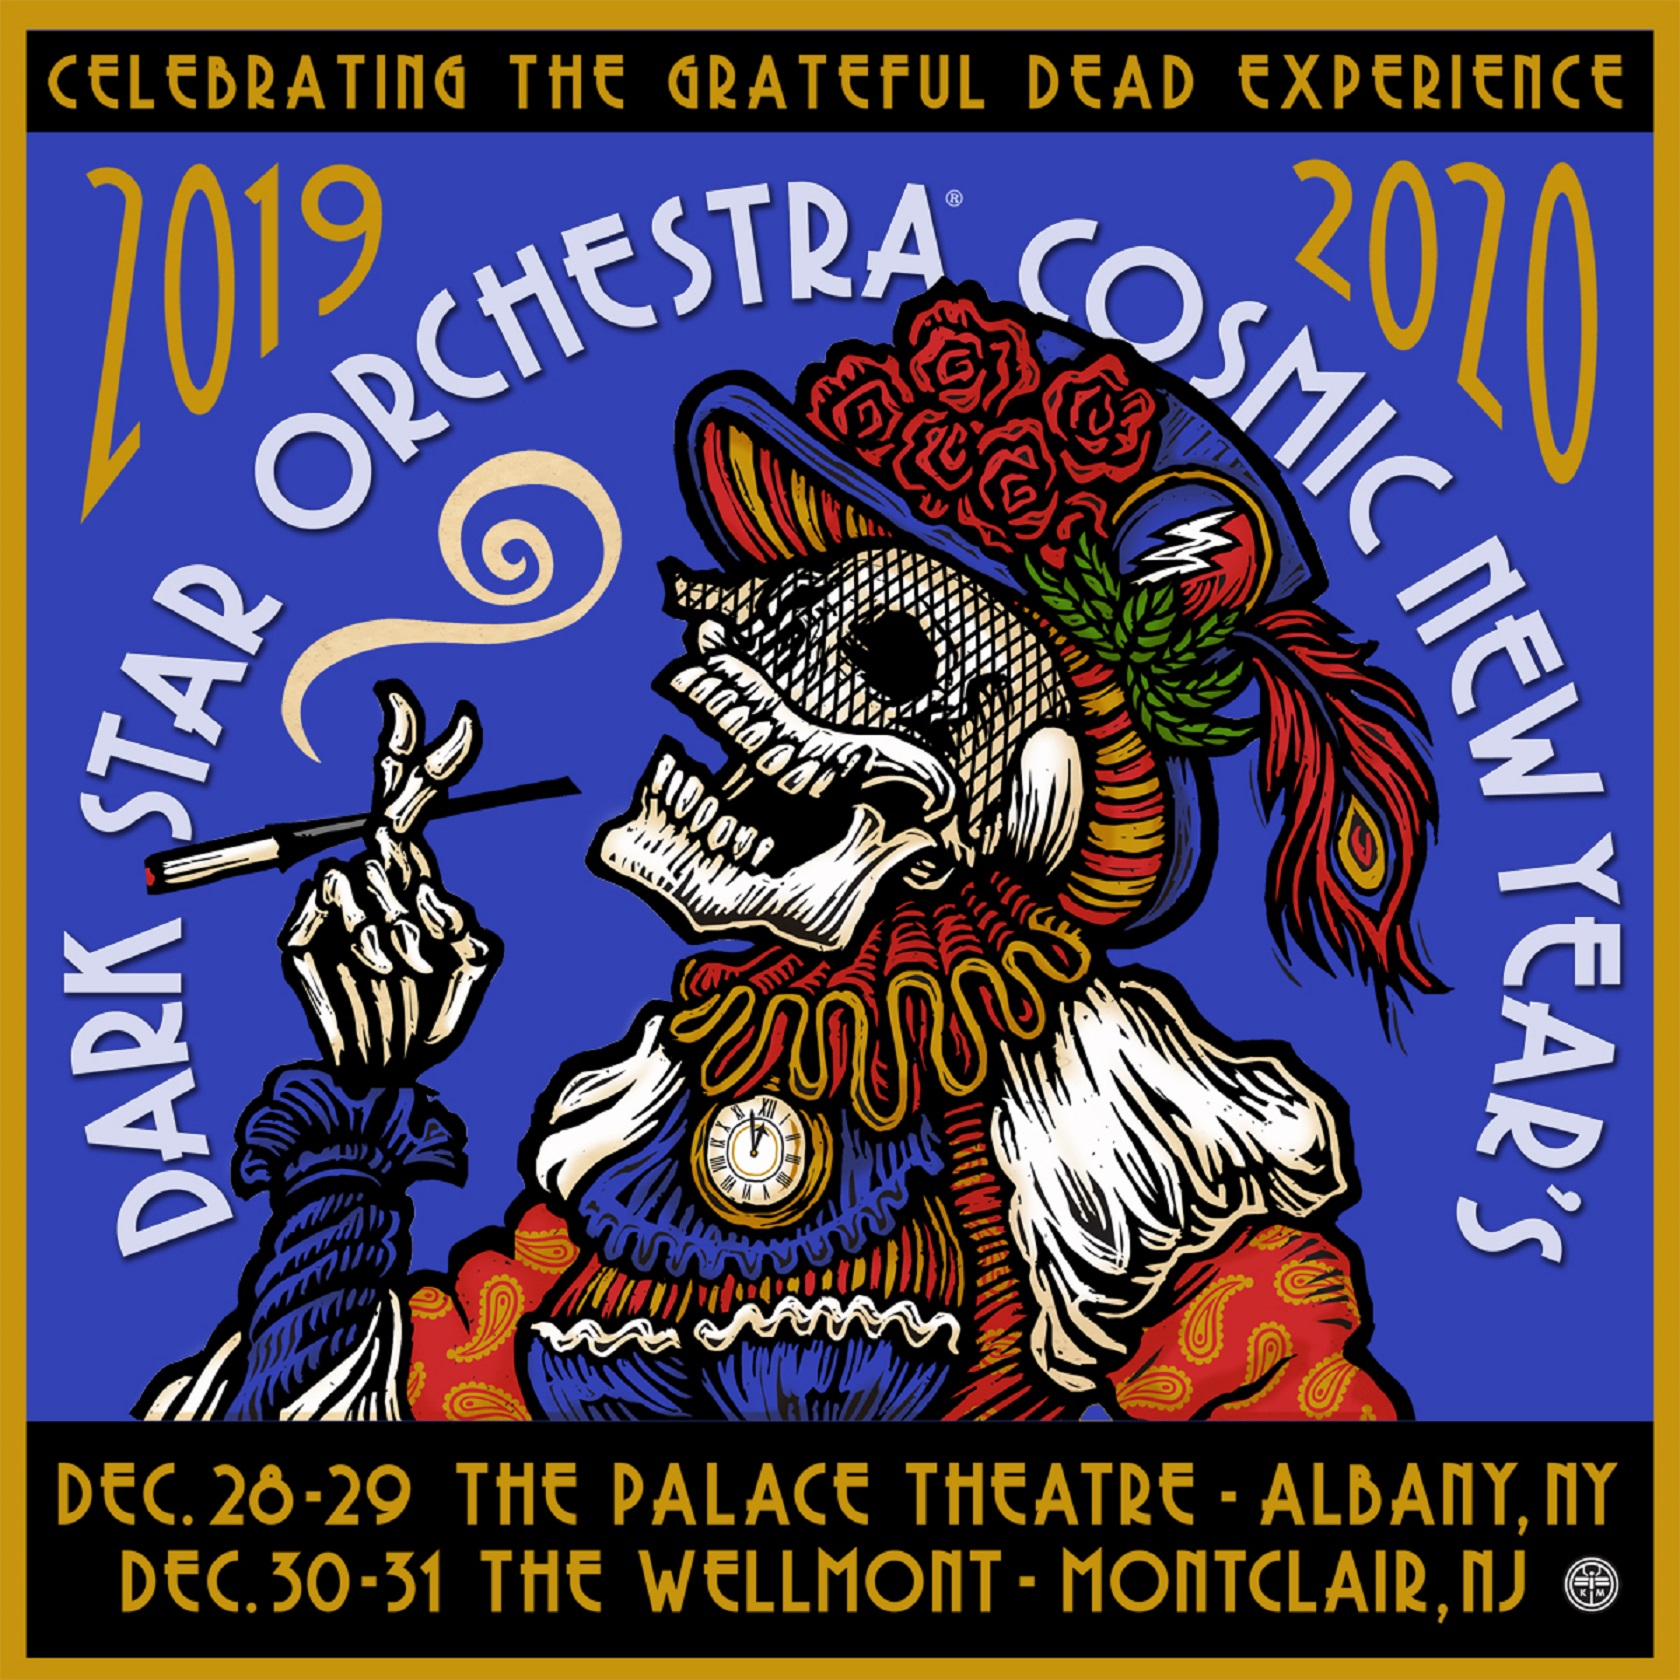 Dark Star Orchestra New Year's Eve Run 2019 ► 2020